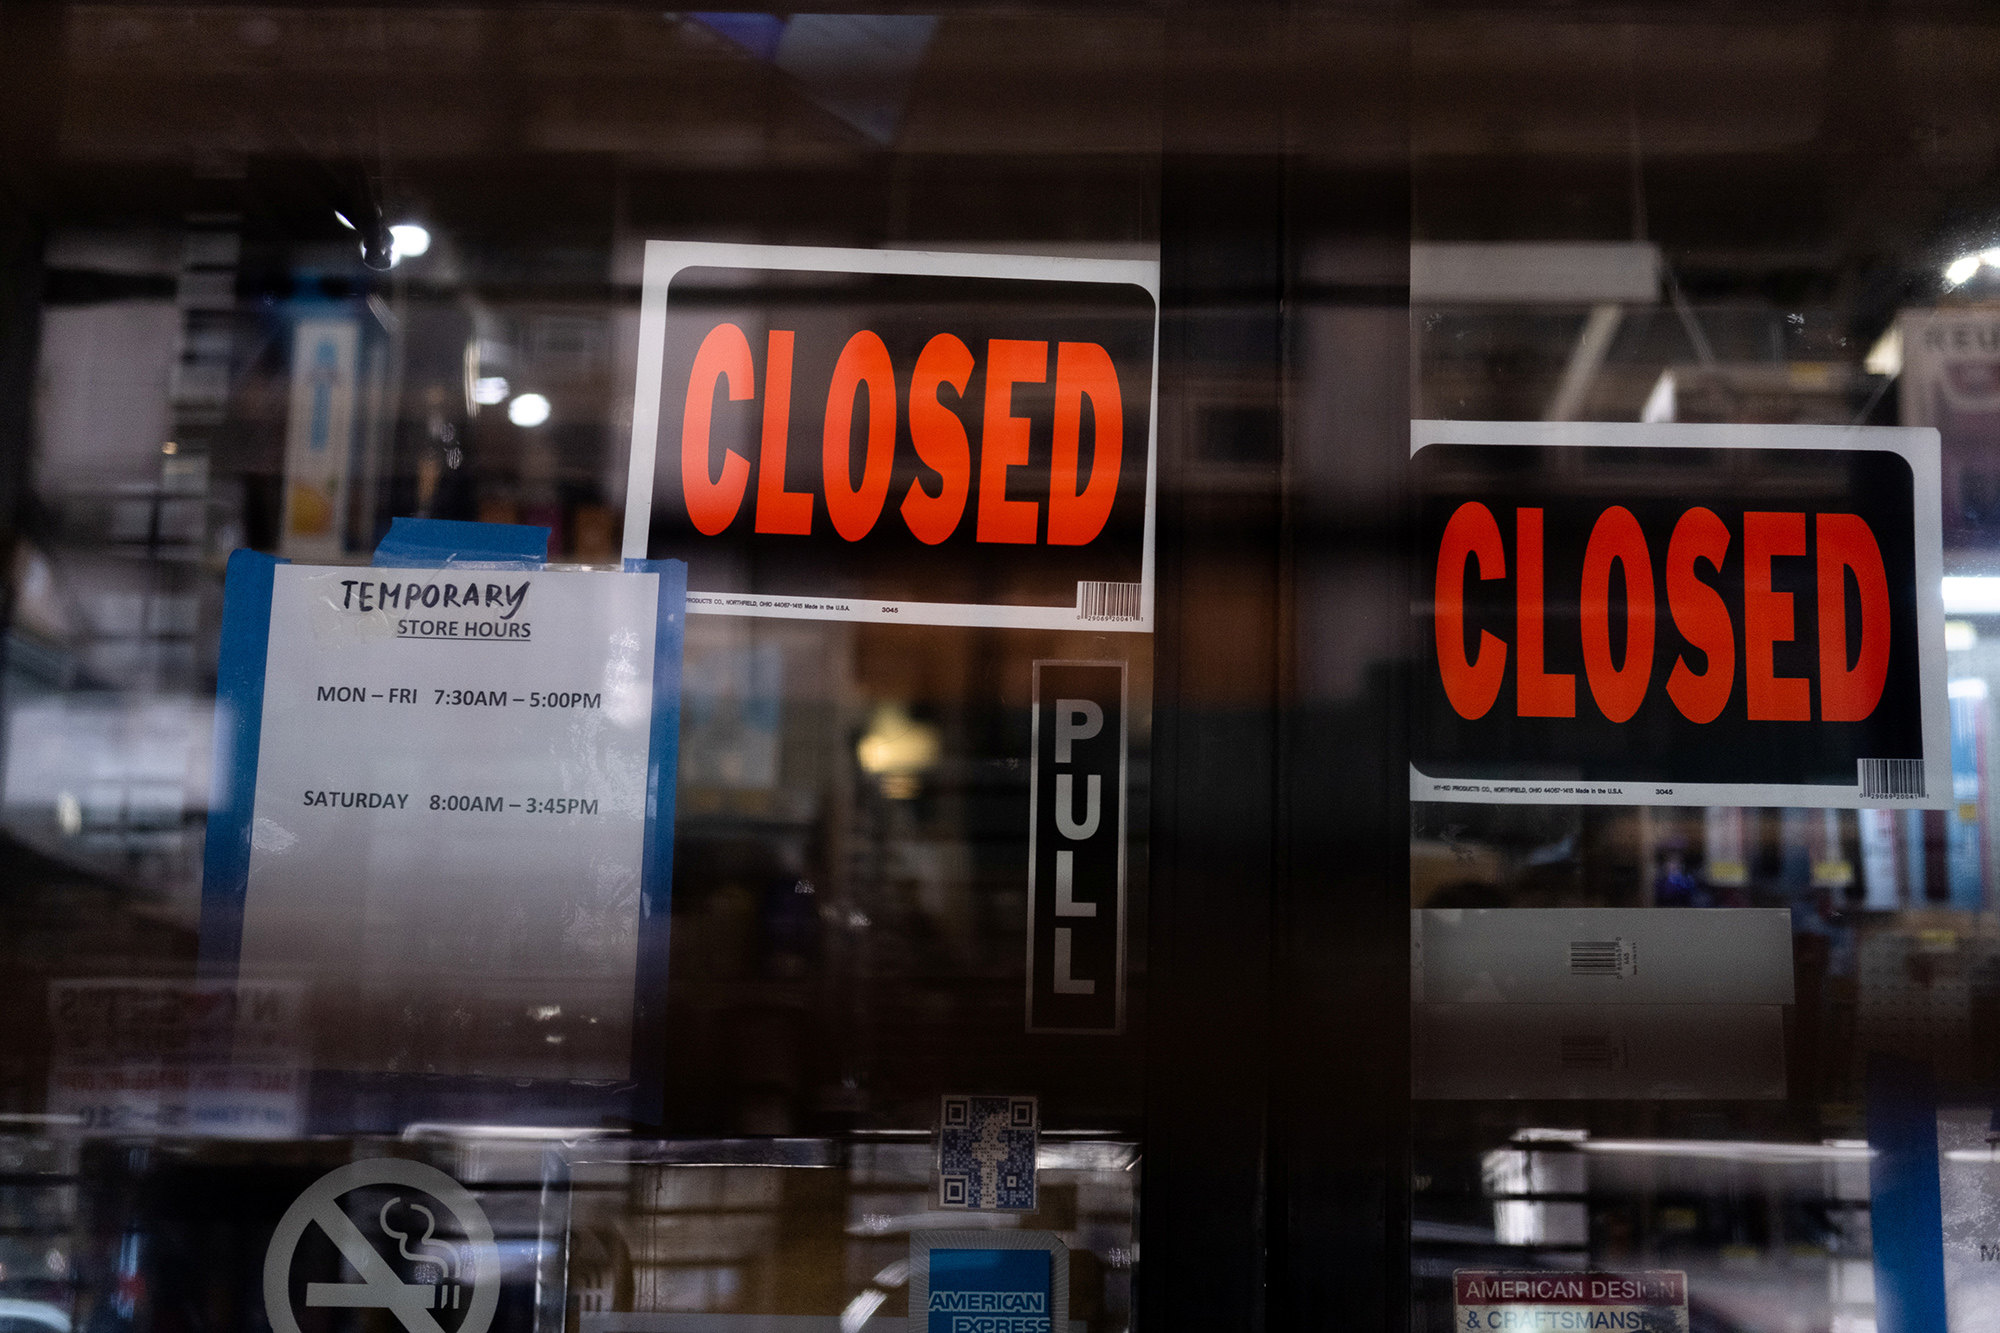 emporary closed signage is seen at a store in Manhattan borough following the outbreak of coronavirus disease (COVID-19), in New York City, U.S., March 15, 2020. REUTERS/Jeenah Moon